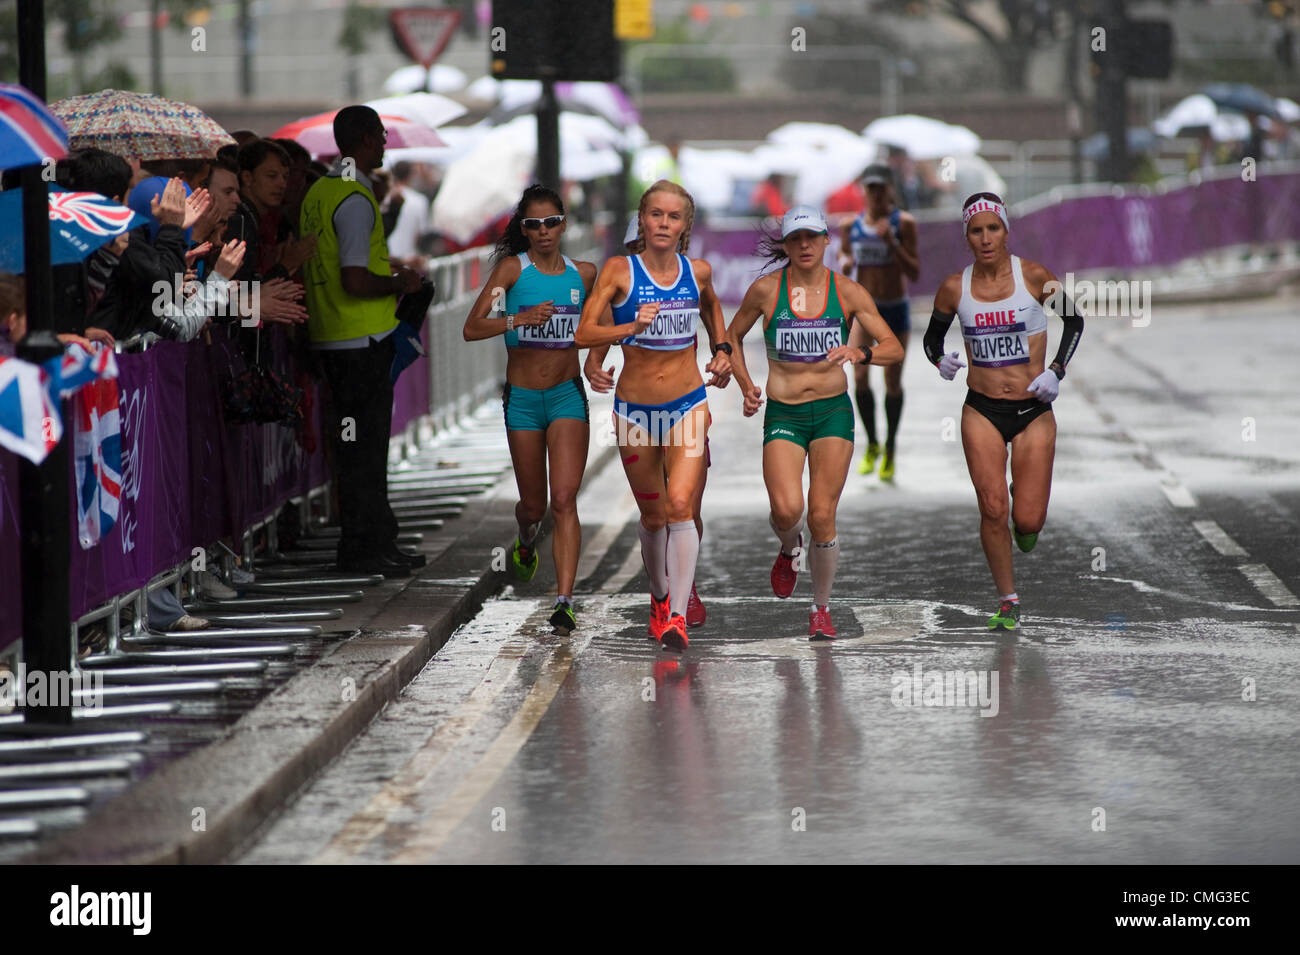 The London Olympic Games 2012 Womens Marathon runners approach the City of London from The Embankment in torrential - Stock Image